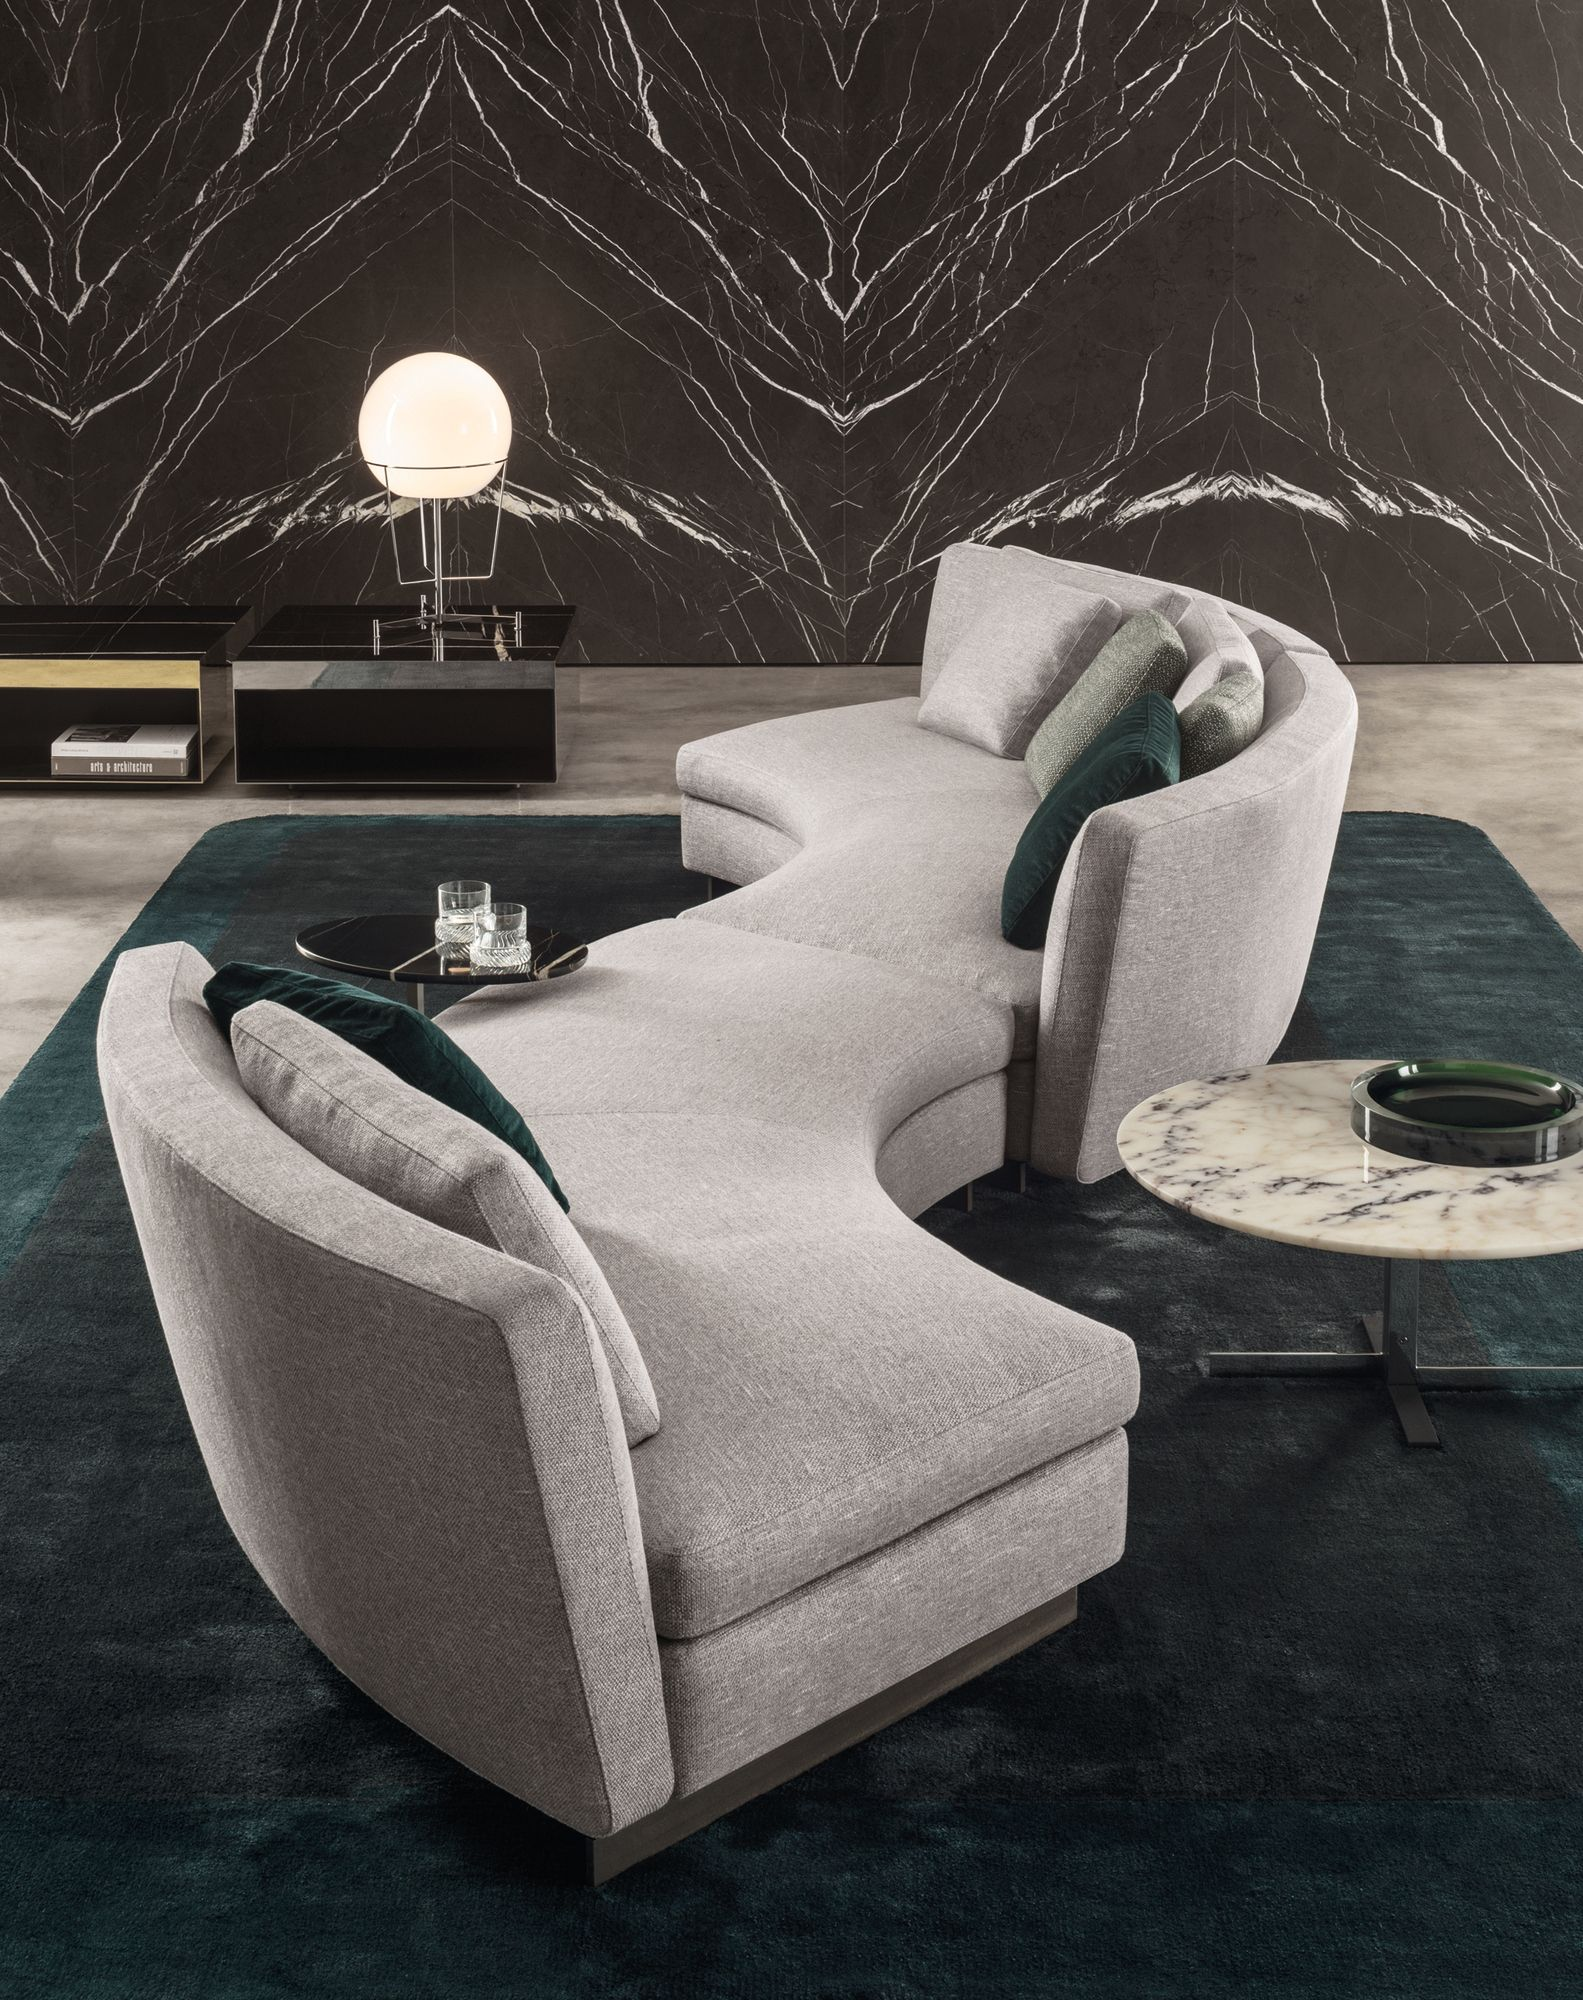 Seymour Seating System by Rodolfo Dordoni for Minotti